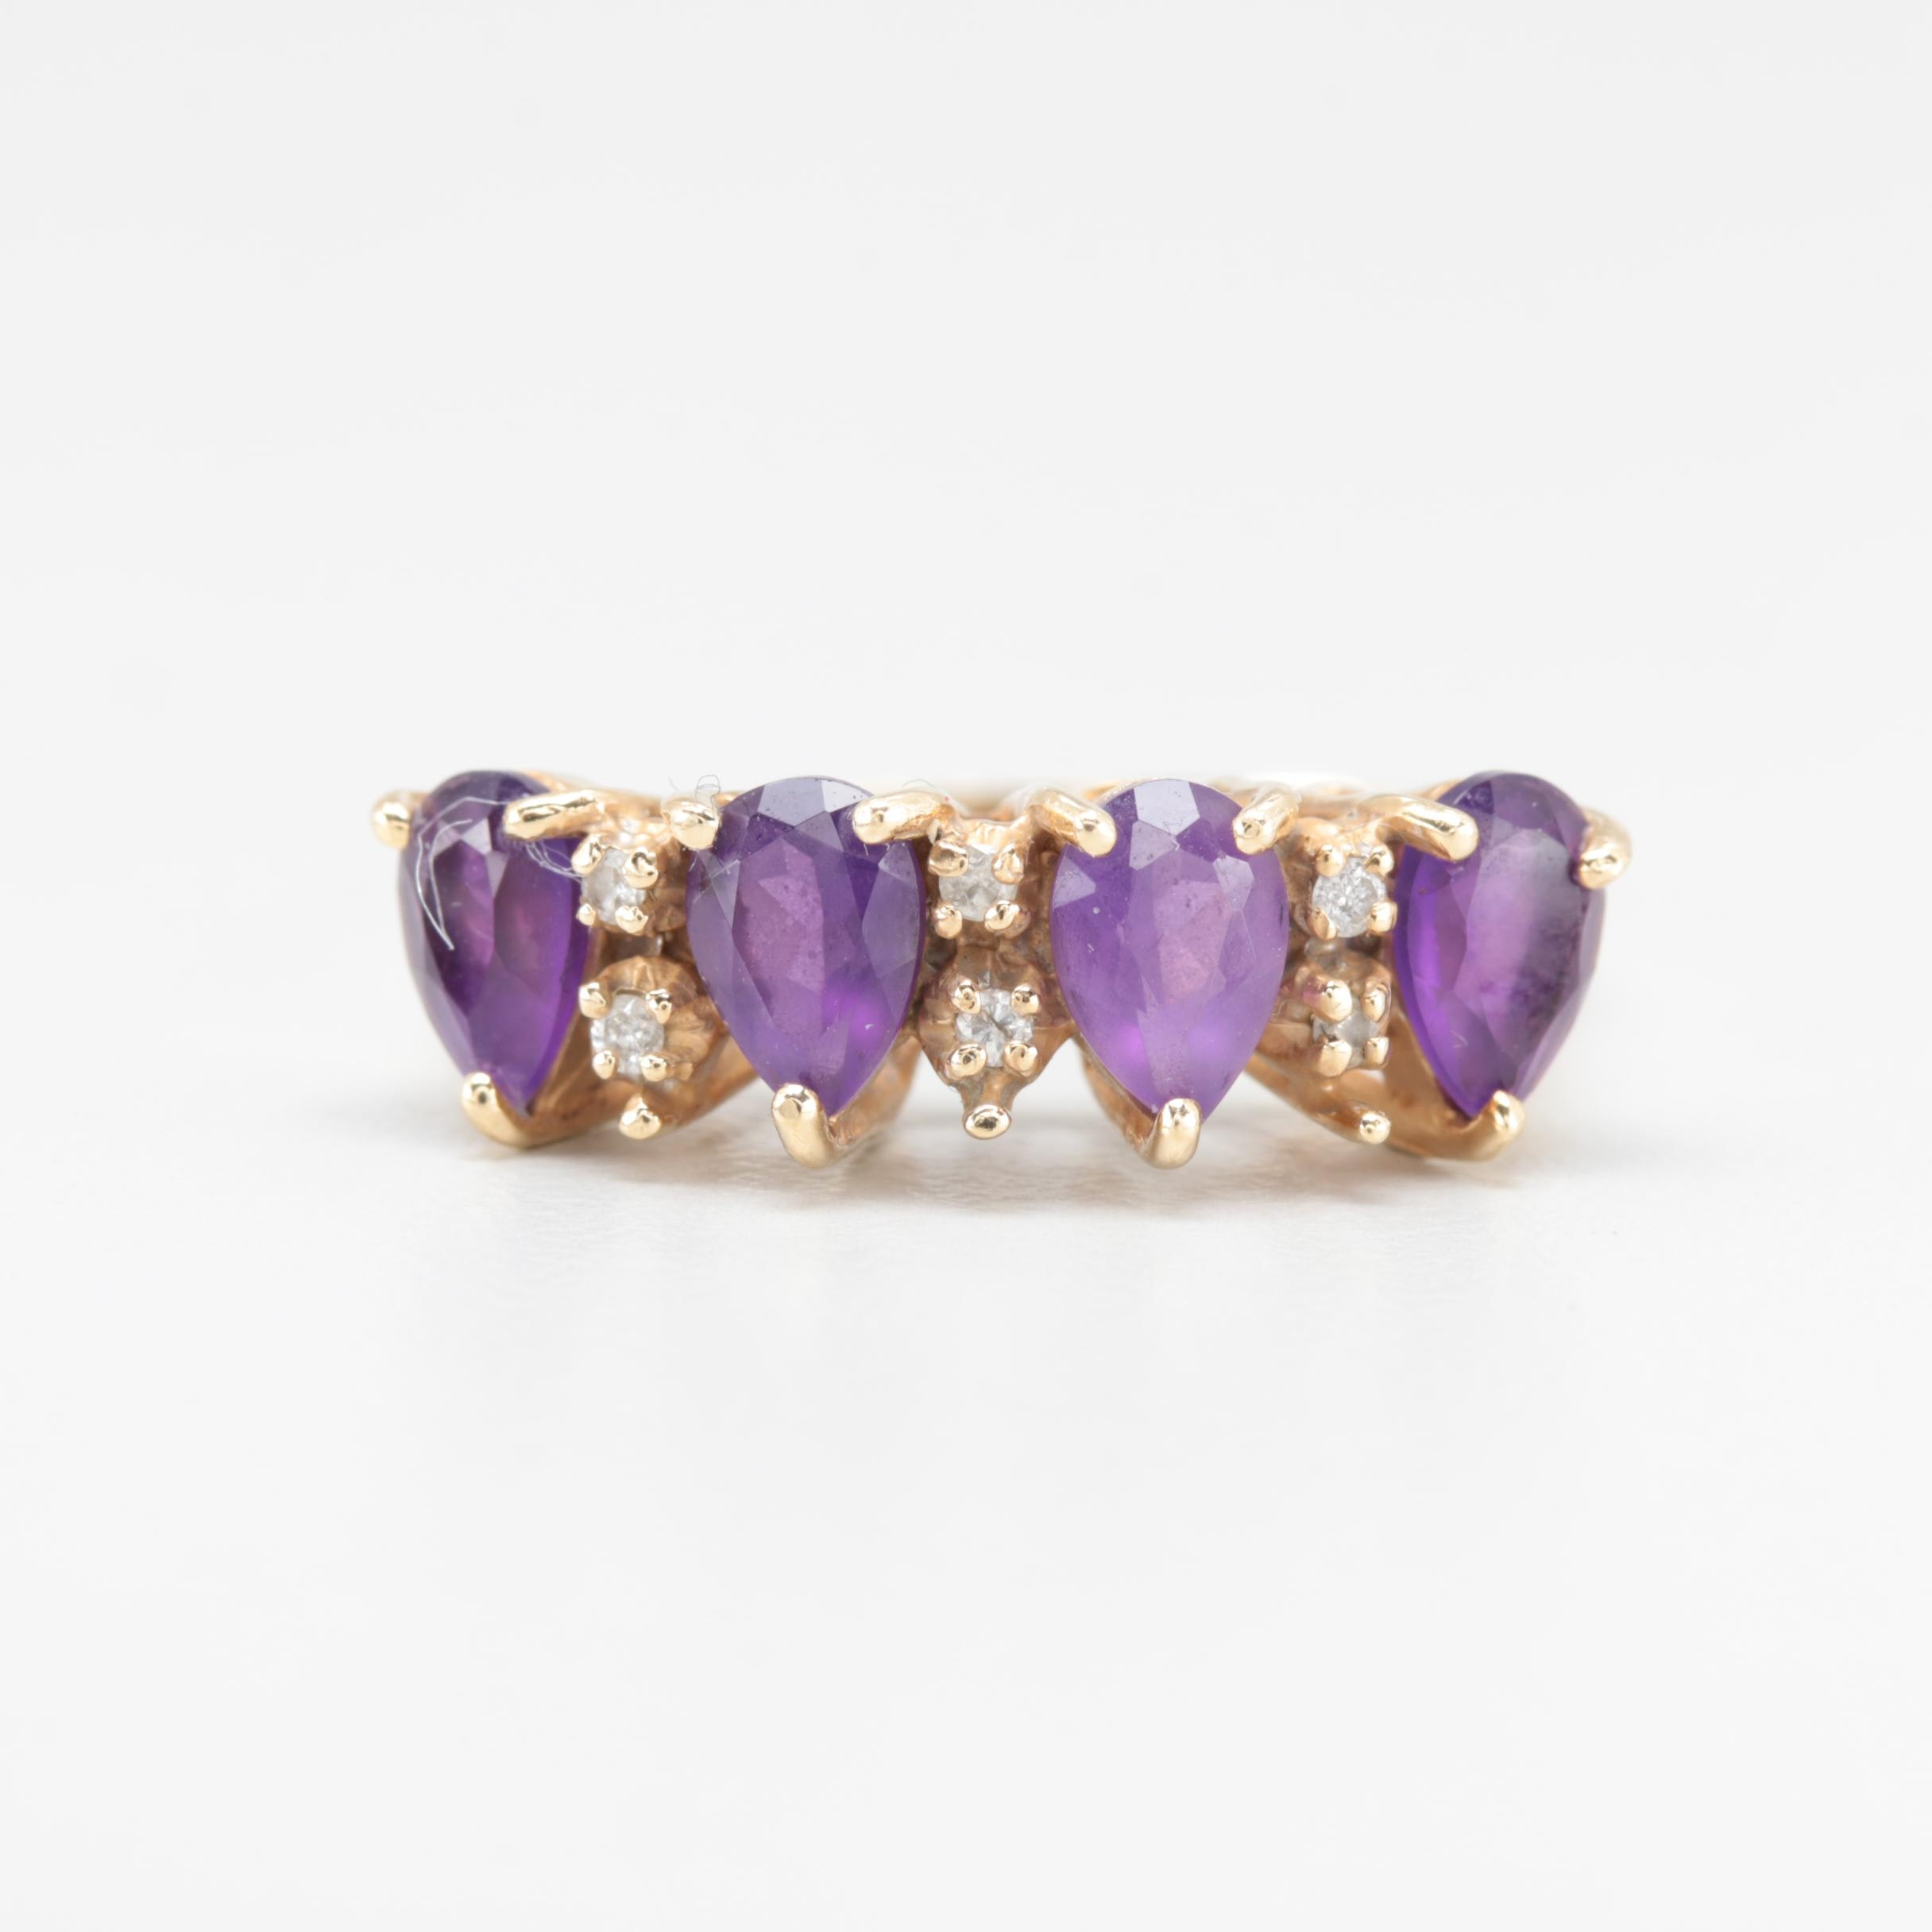 10K and 14K Yellow Gold Amethyst and Diamond Ring